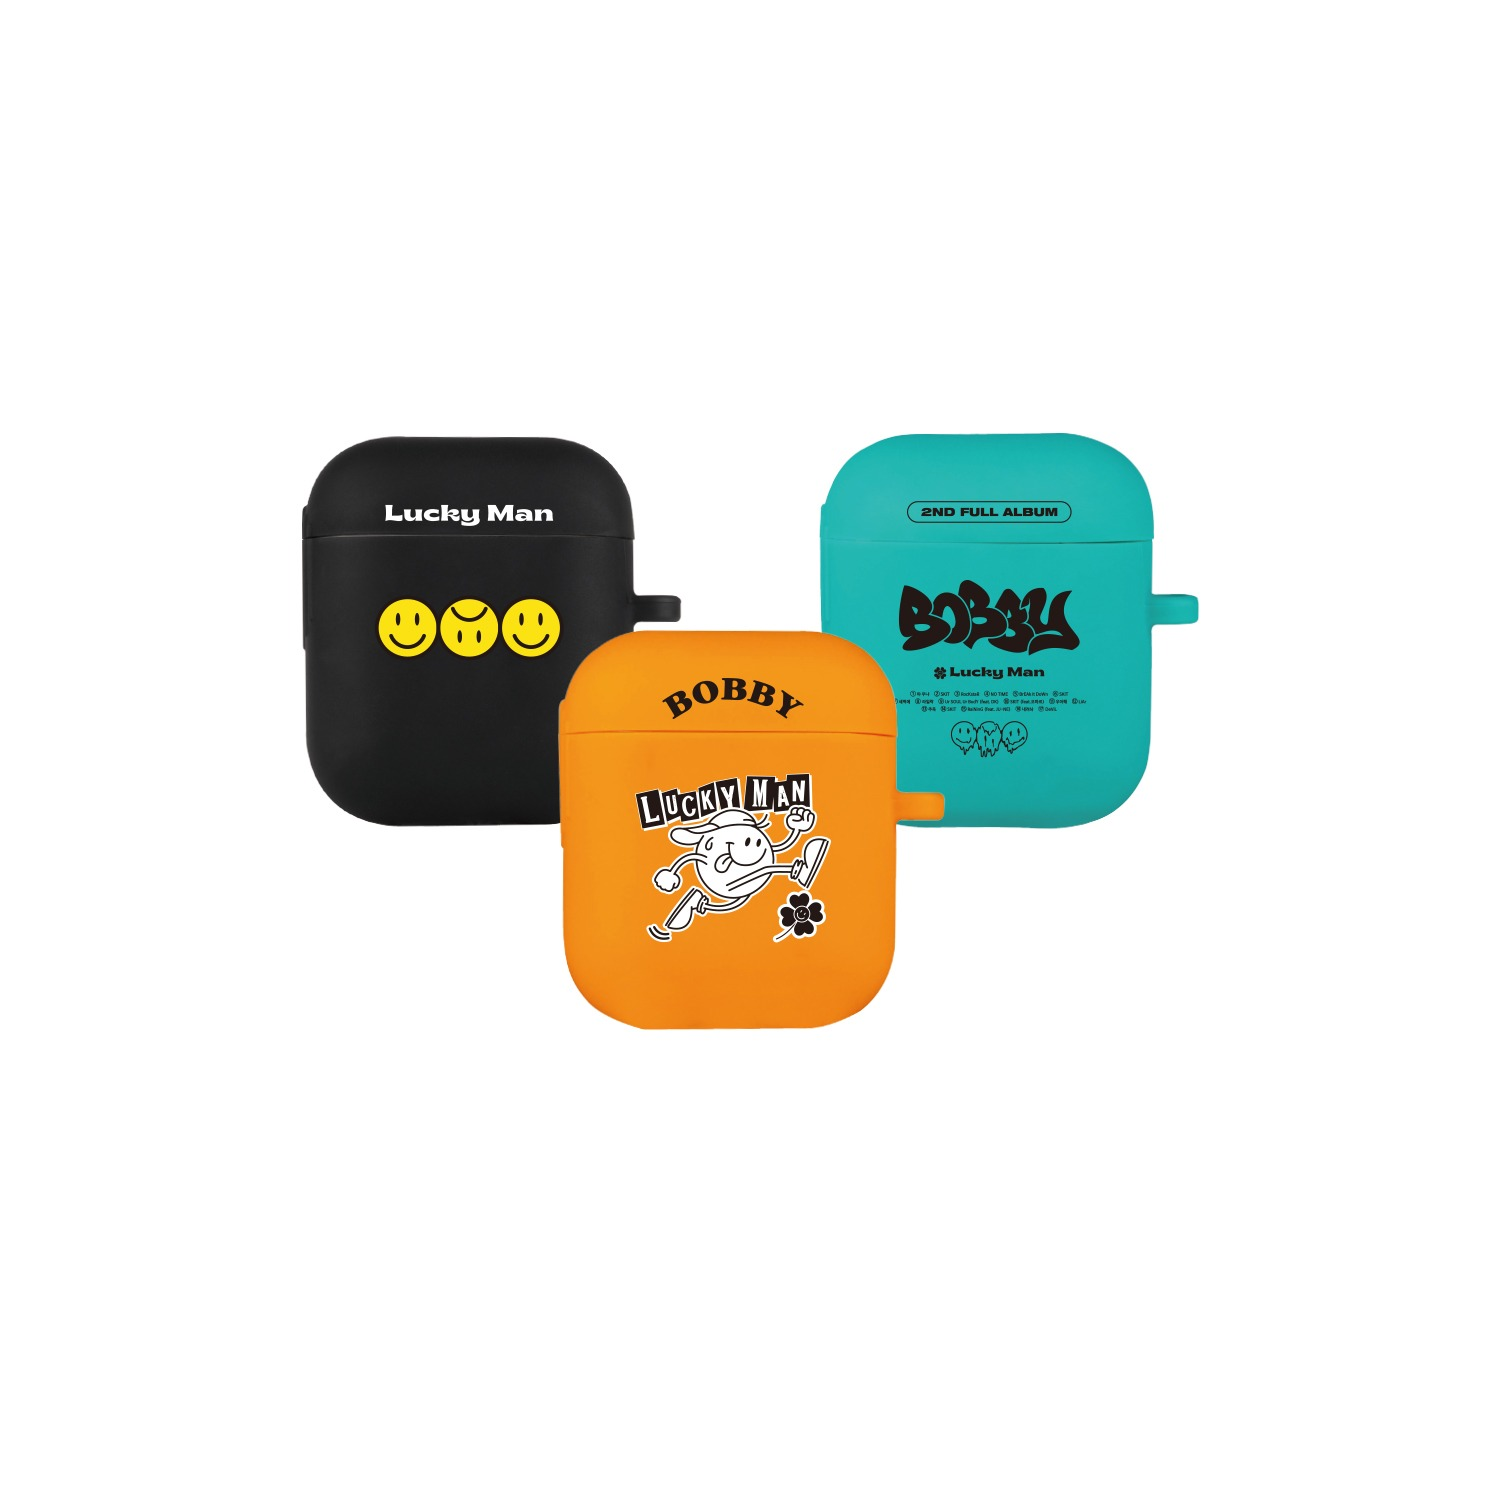 [TRADIT] BOBBY AIRPODS CASE_LUCKYMAN